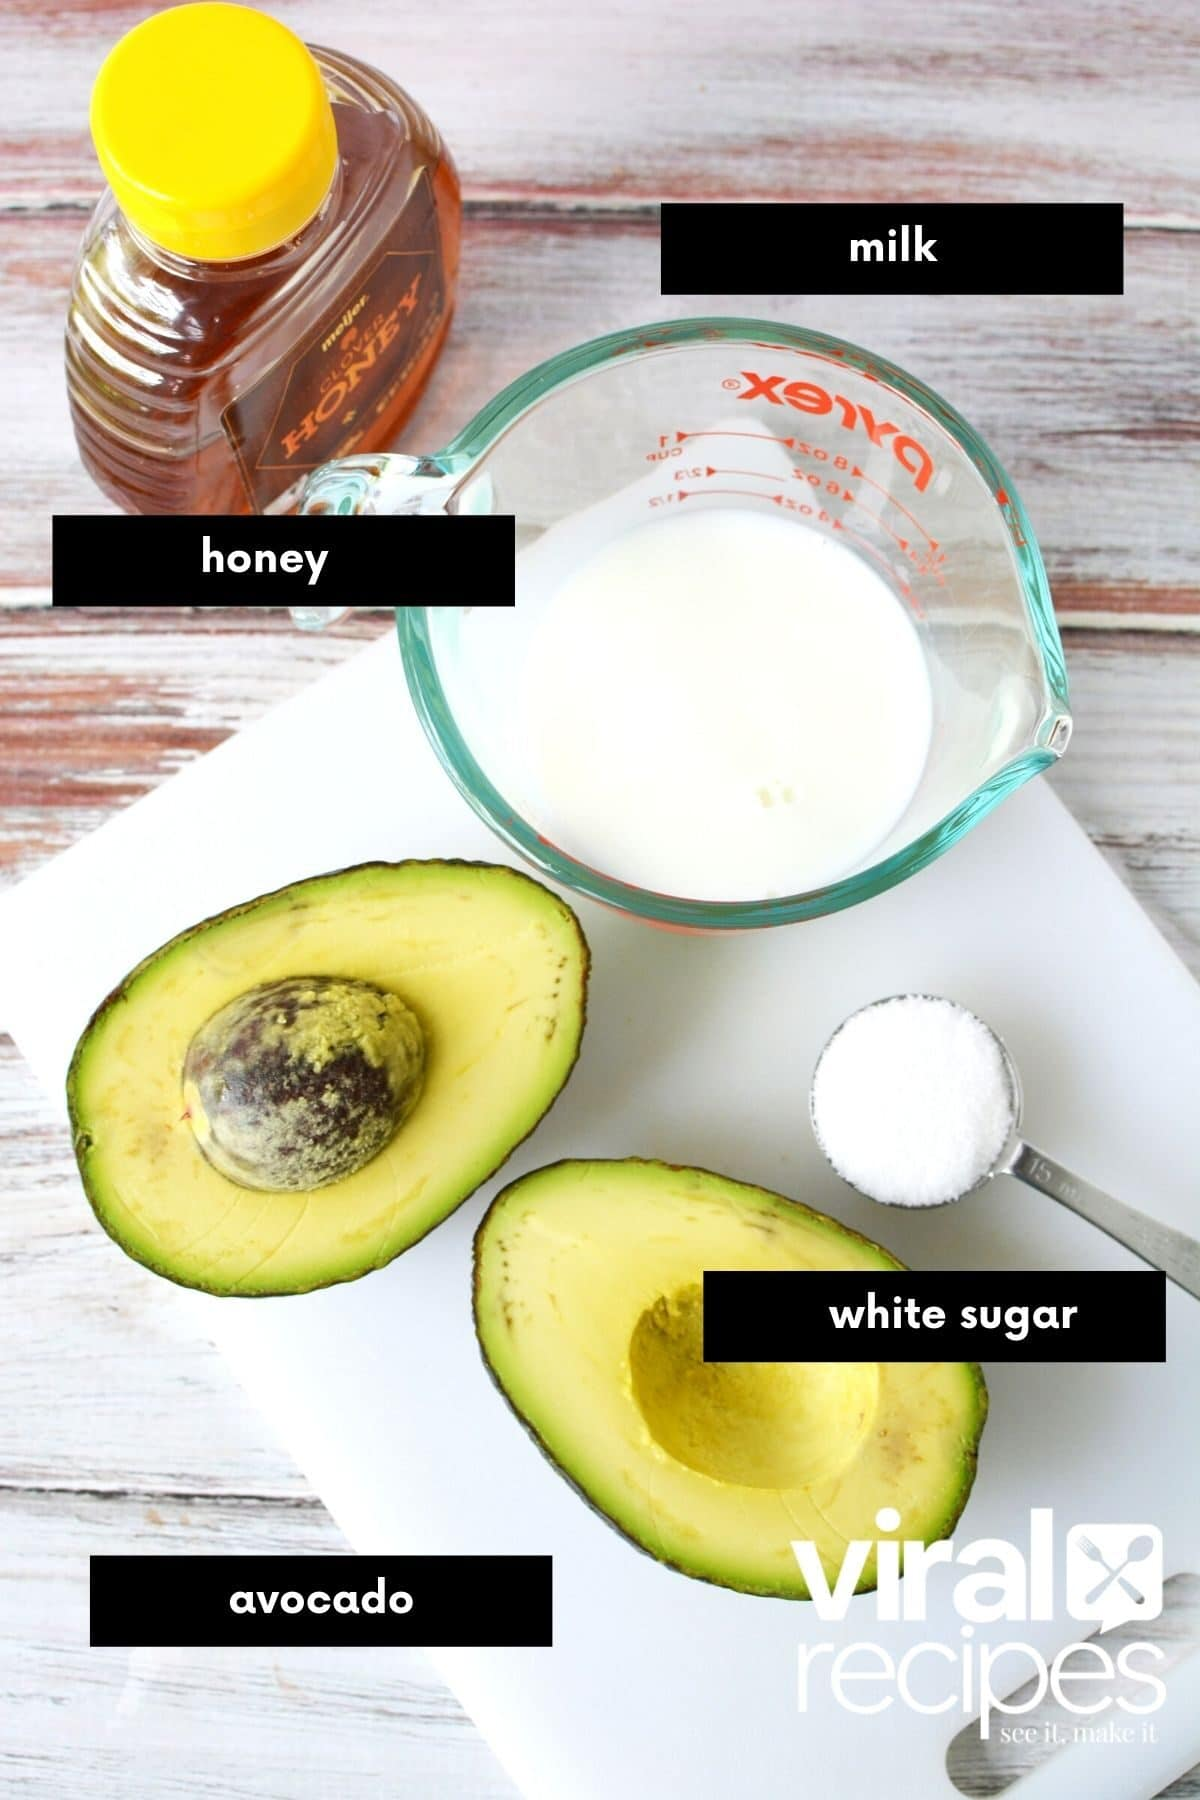 avocado ingredients image with titles.